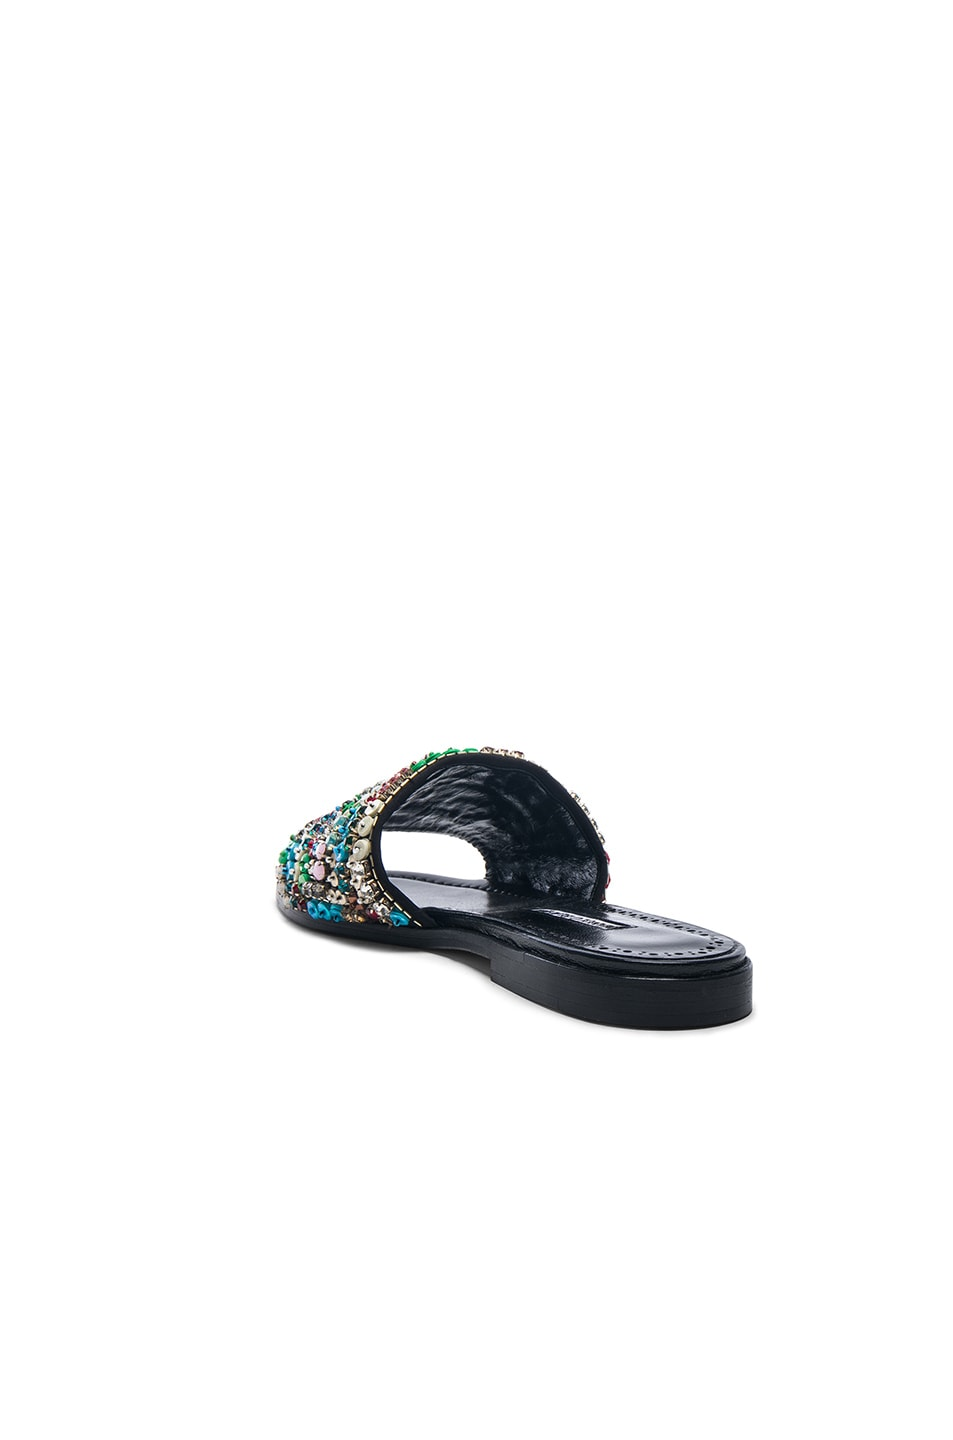 Image 3 of Manolo Blahnik Gioiosa Slide in Black & Multi